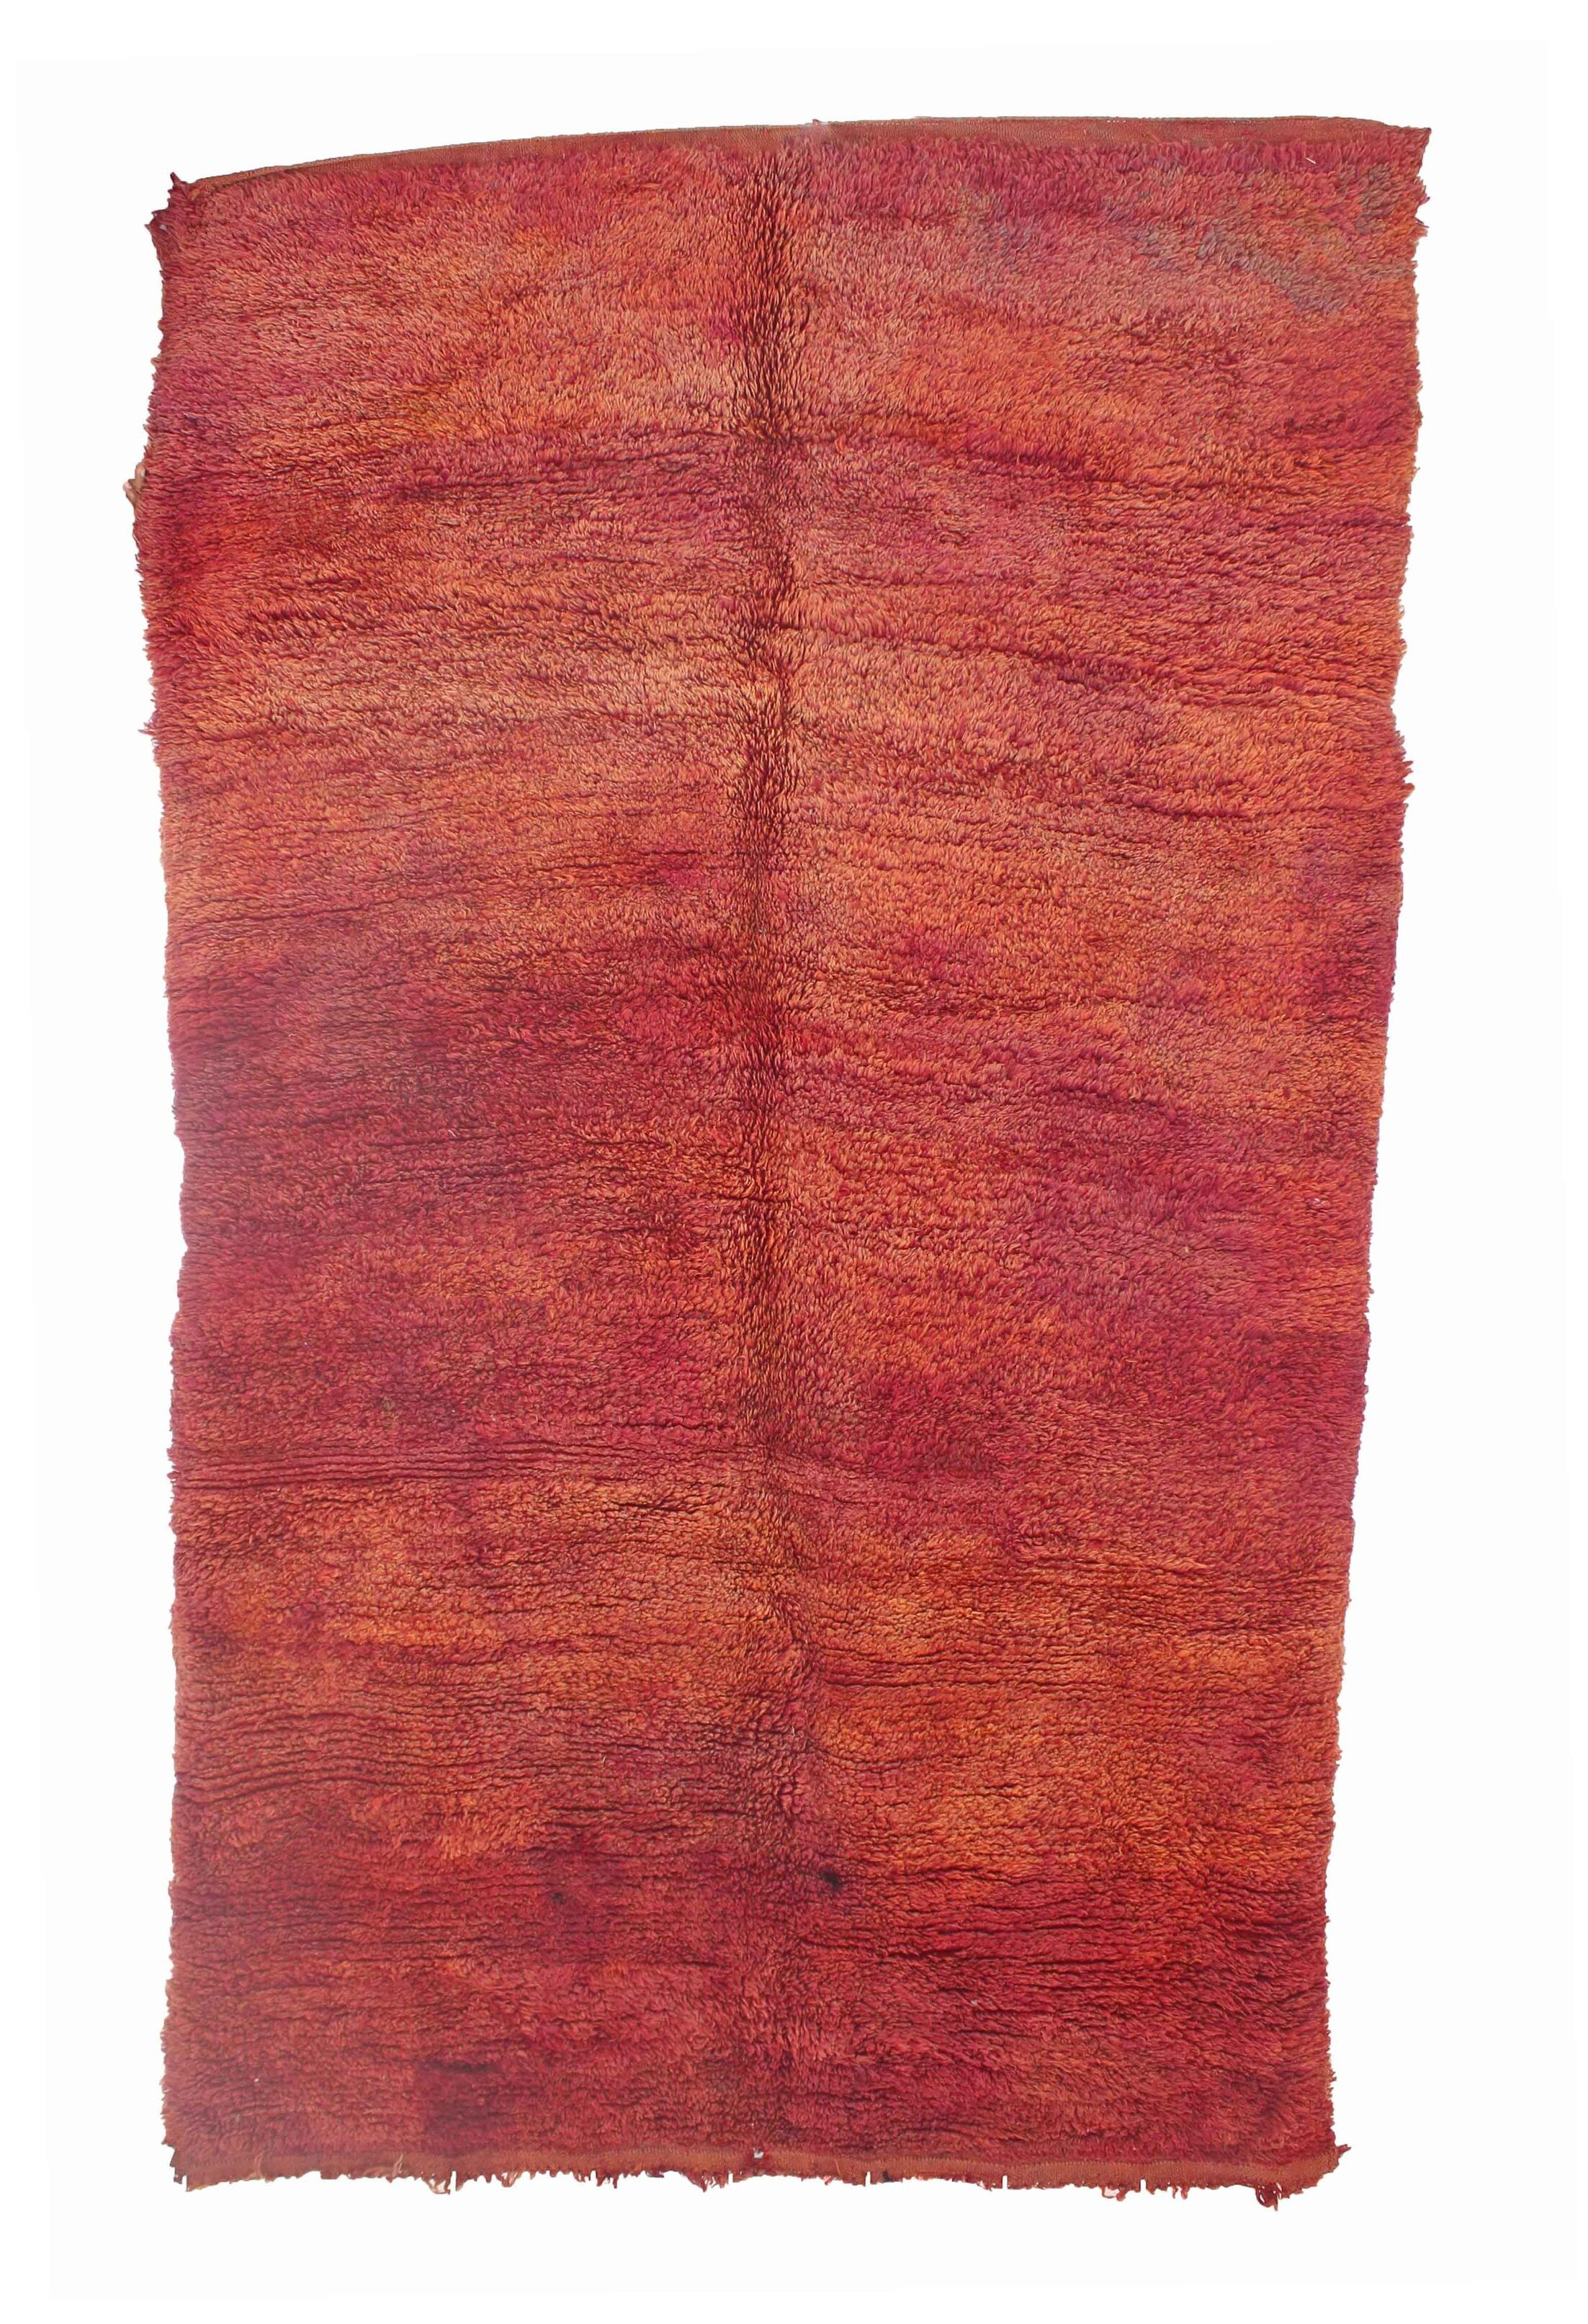 Beni M'Guild Vintage Moroccan Hand Knotted Wool Orange/Red Area Rug